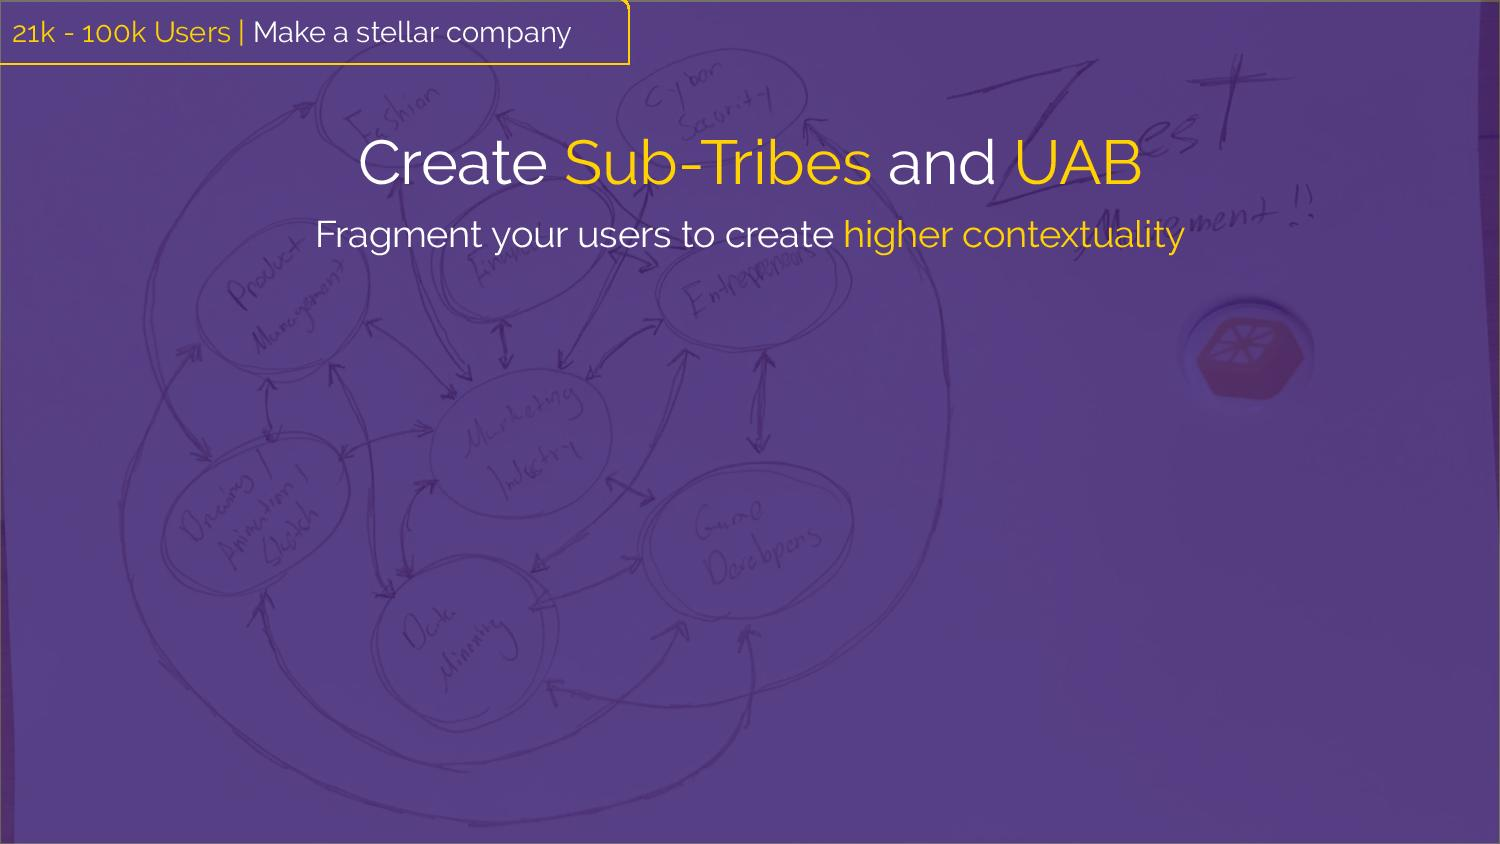 """Create Sub-Tribes and UAB: Fragment your users to create higher contextuality""   [Image: sketch of different user segments and their connections]"